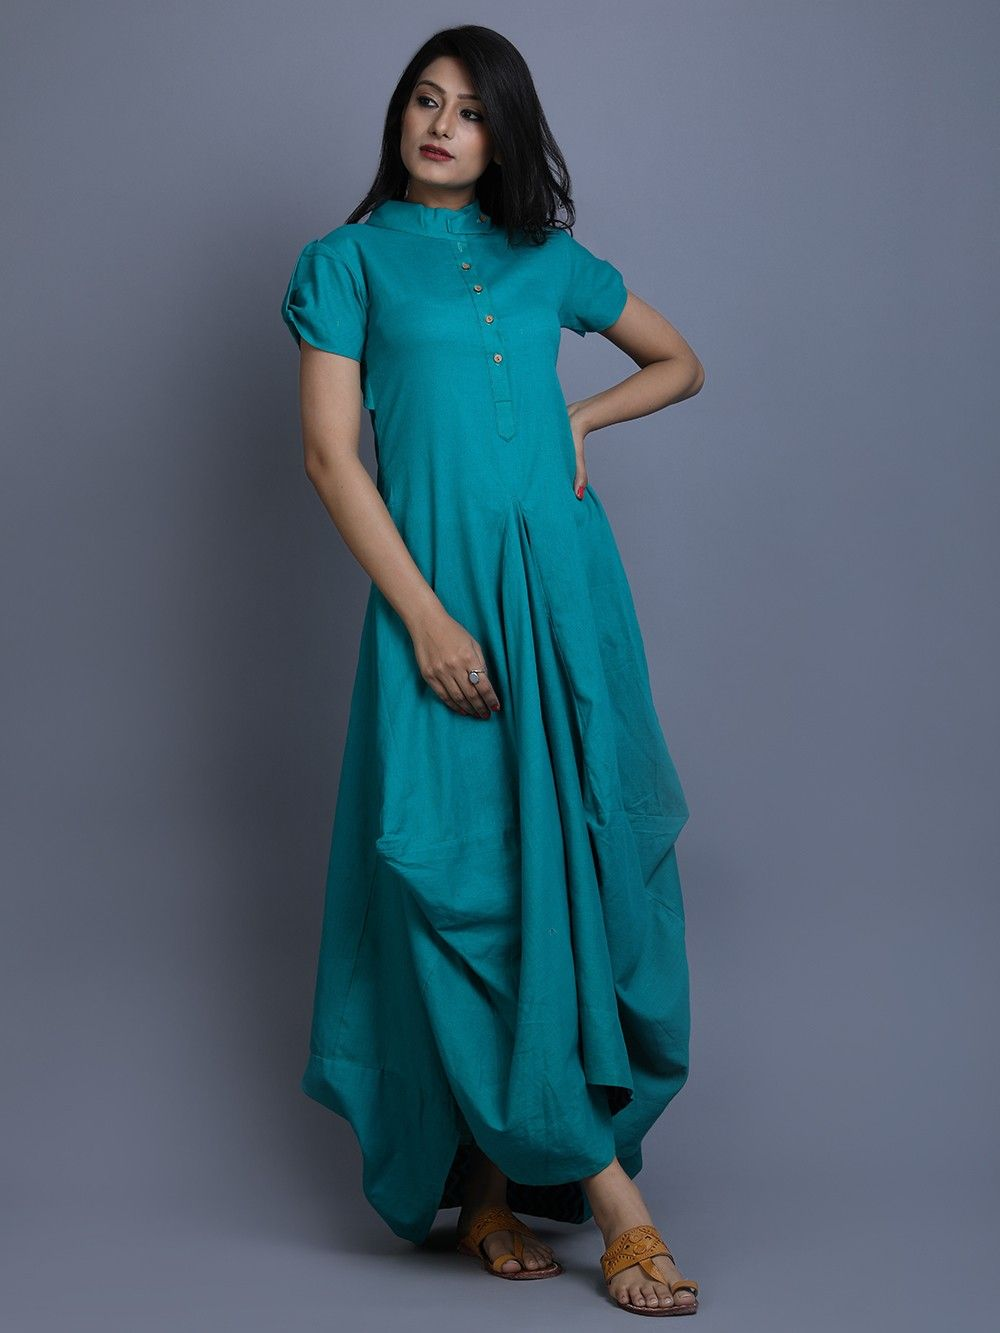 a9d9b9bc4e1 The Loom- An online Shop for Exclusive Handcrafted products comprising of  Apparel